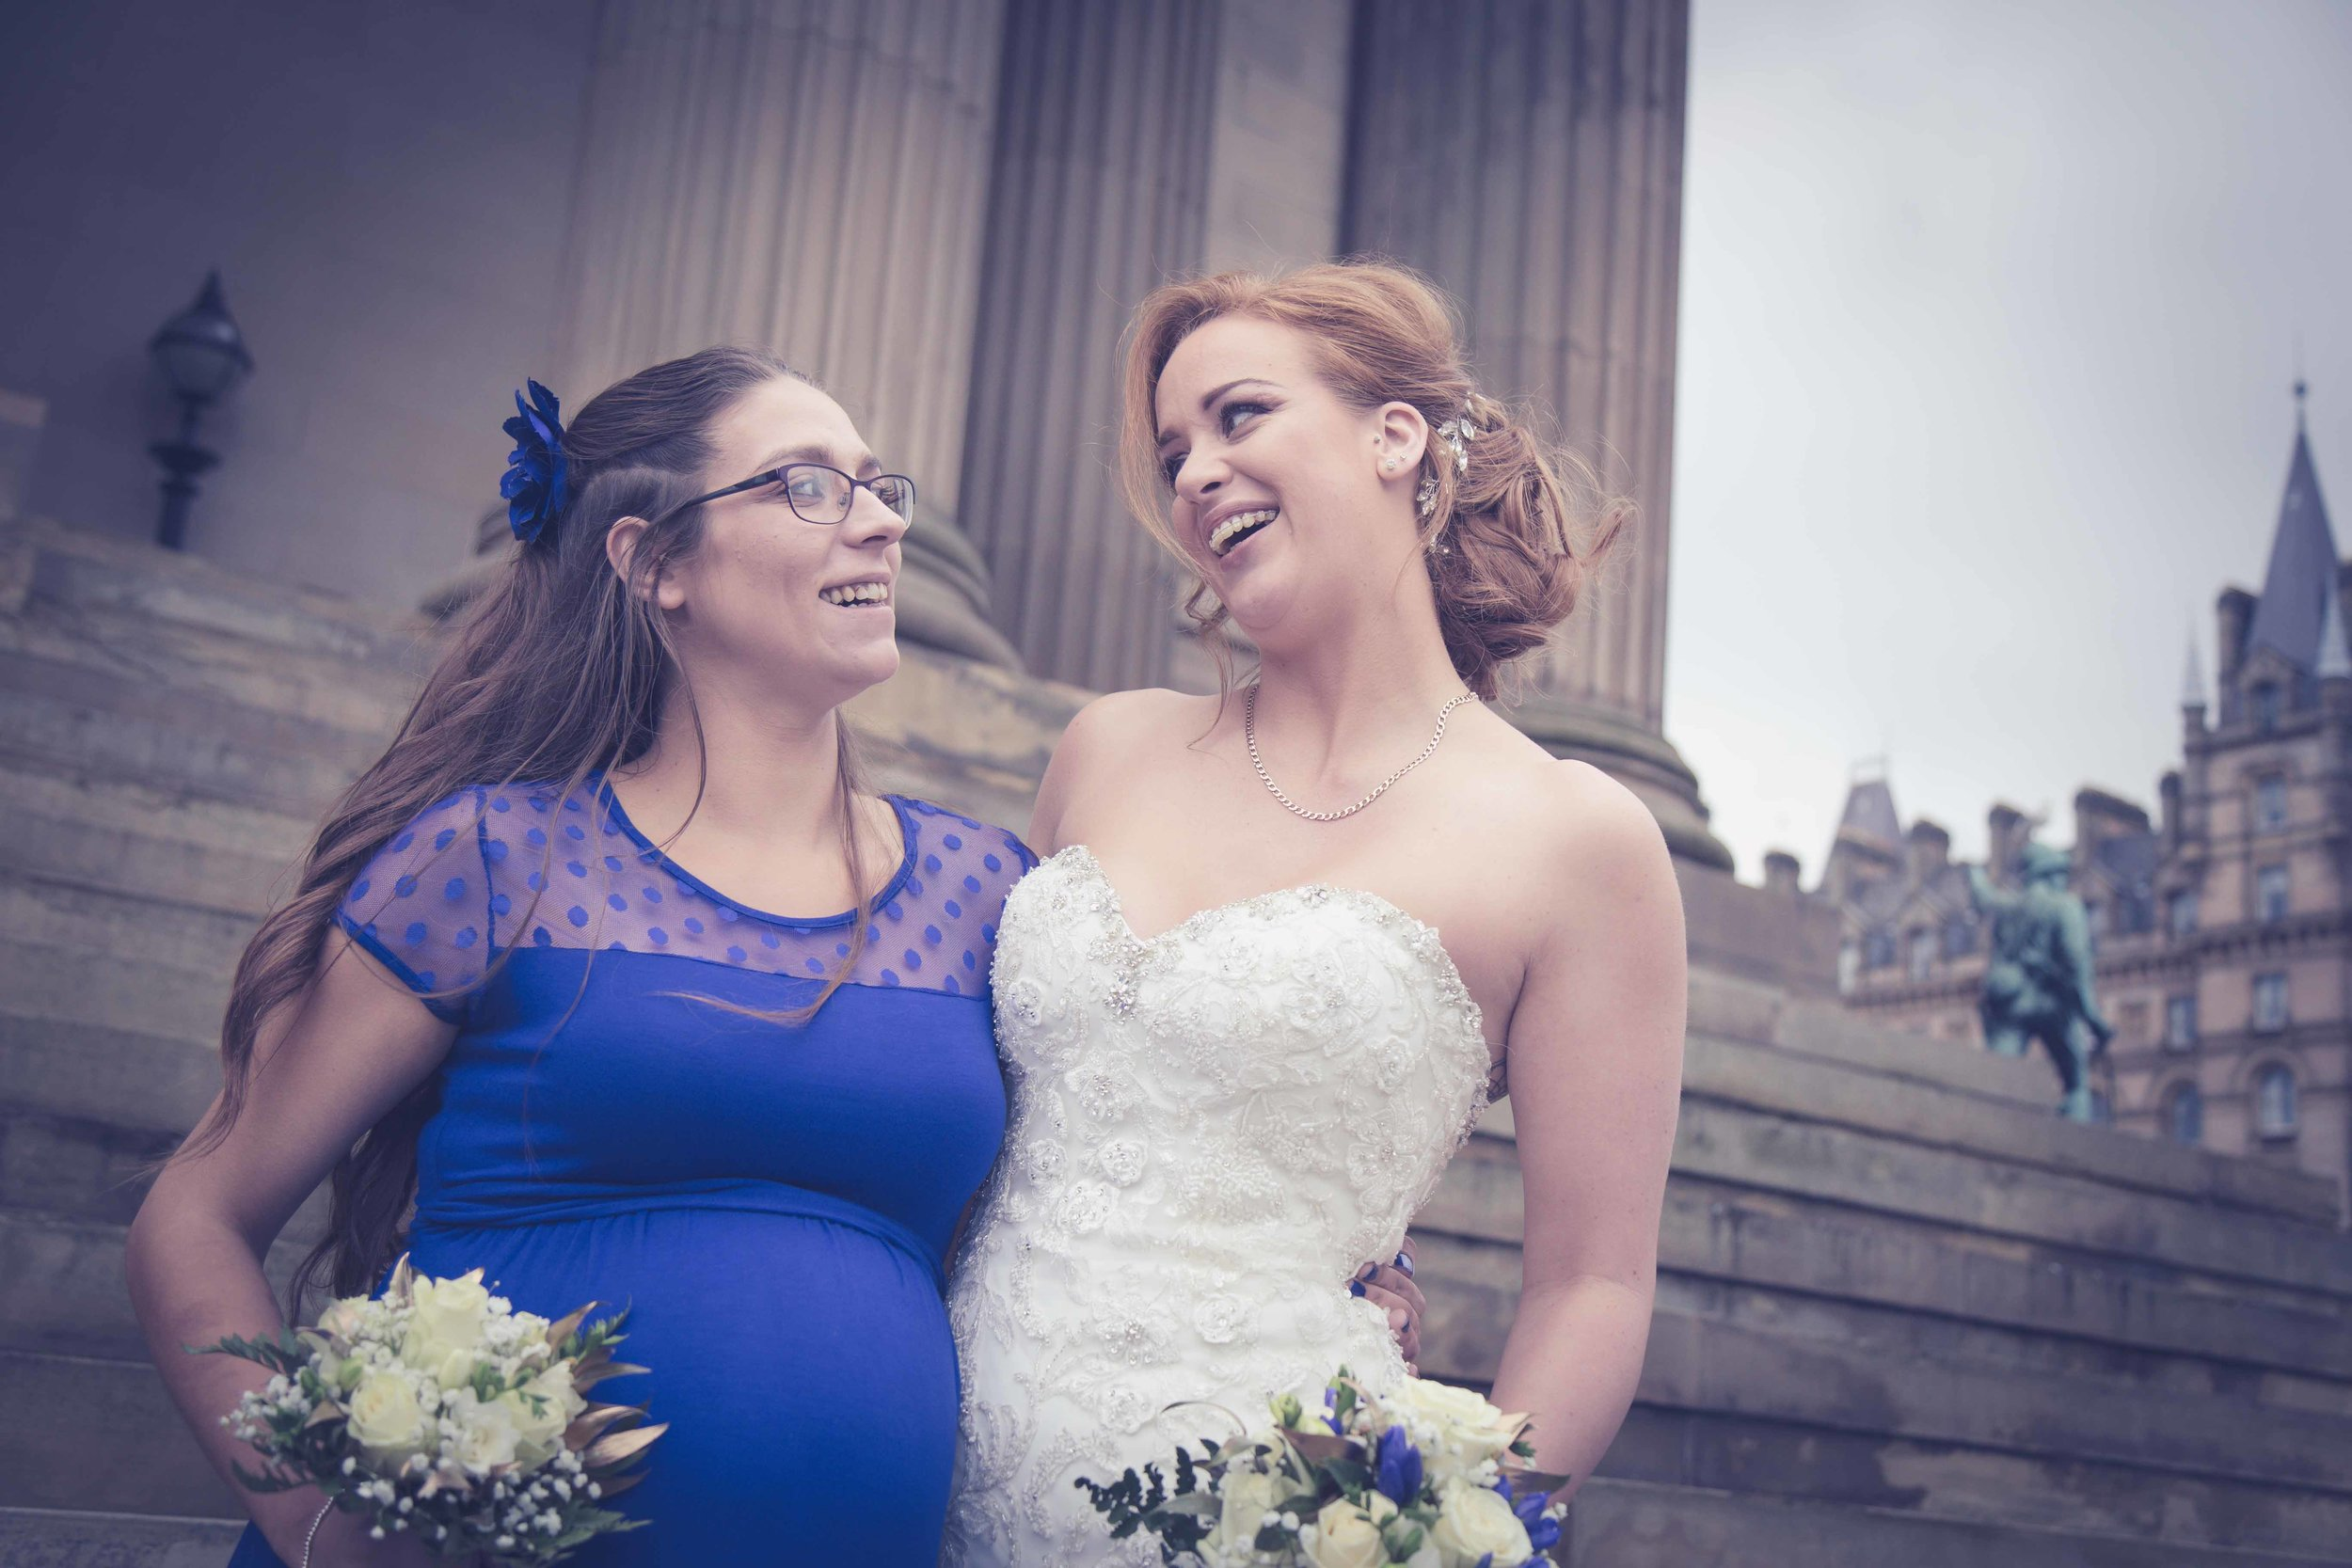 wedding-photos-at-st-georges-hall-liverpool (52 of 122).jpg